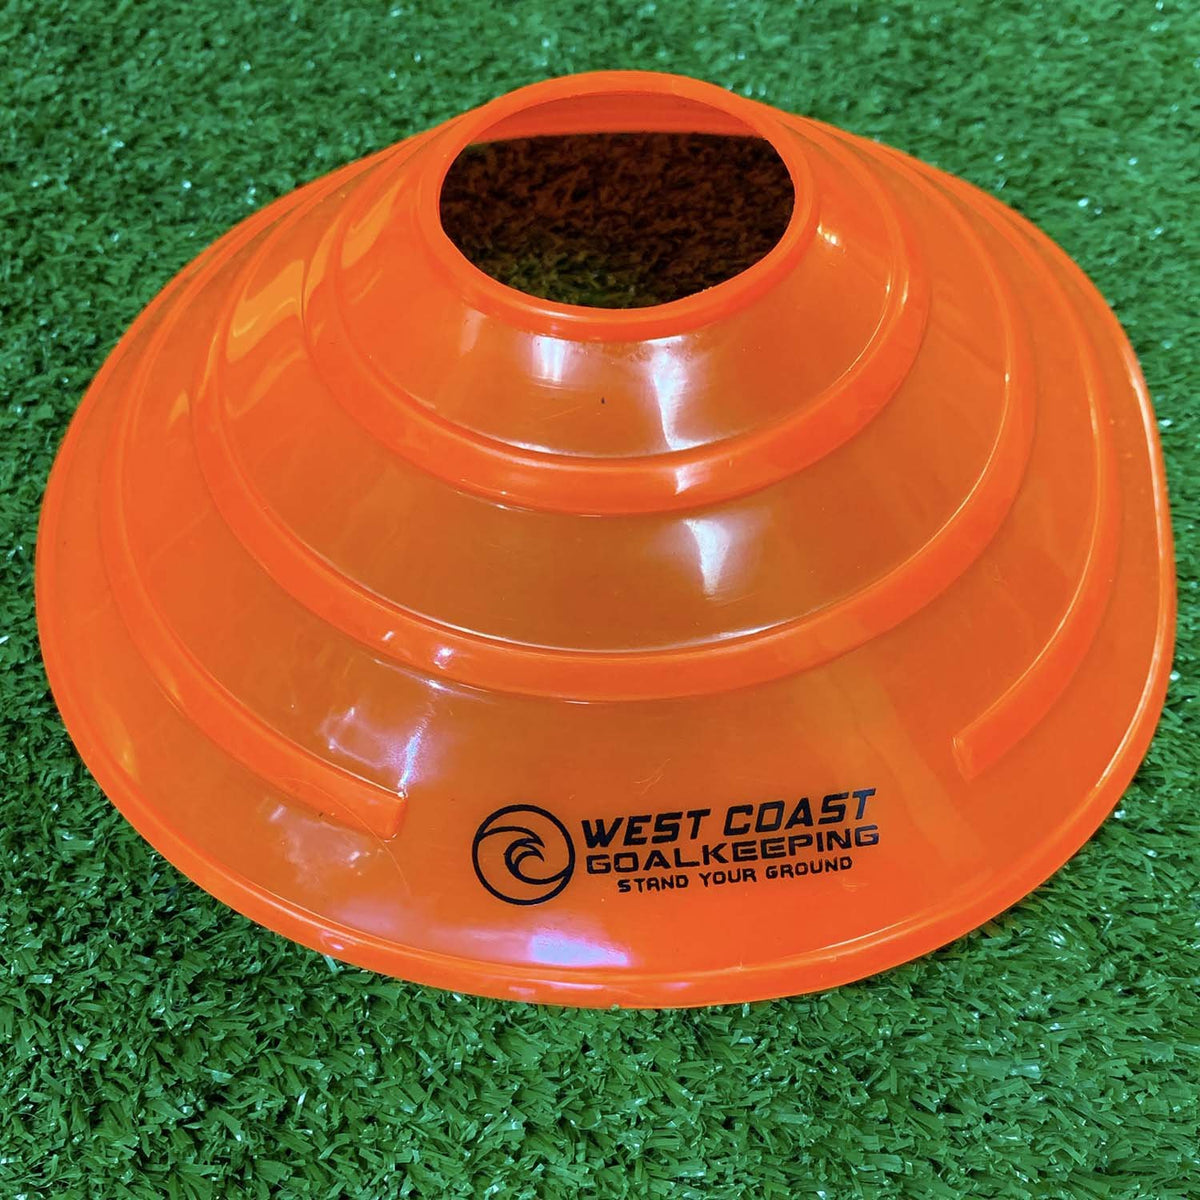 Training Cones 20 Pack - West Coast Goalkeeping